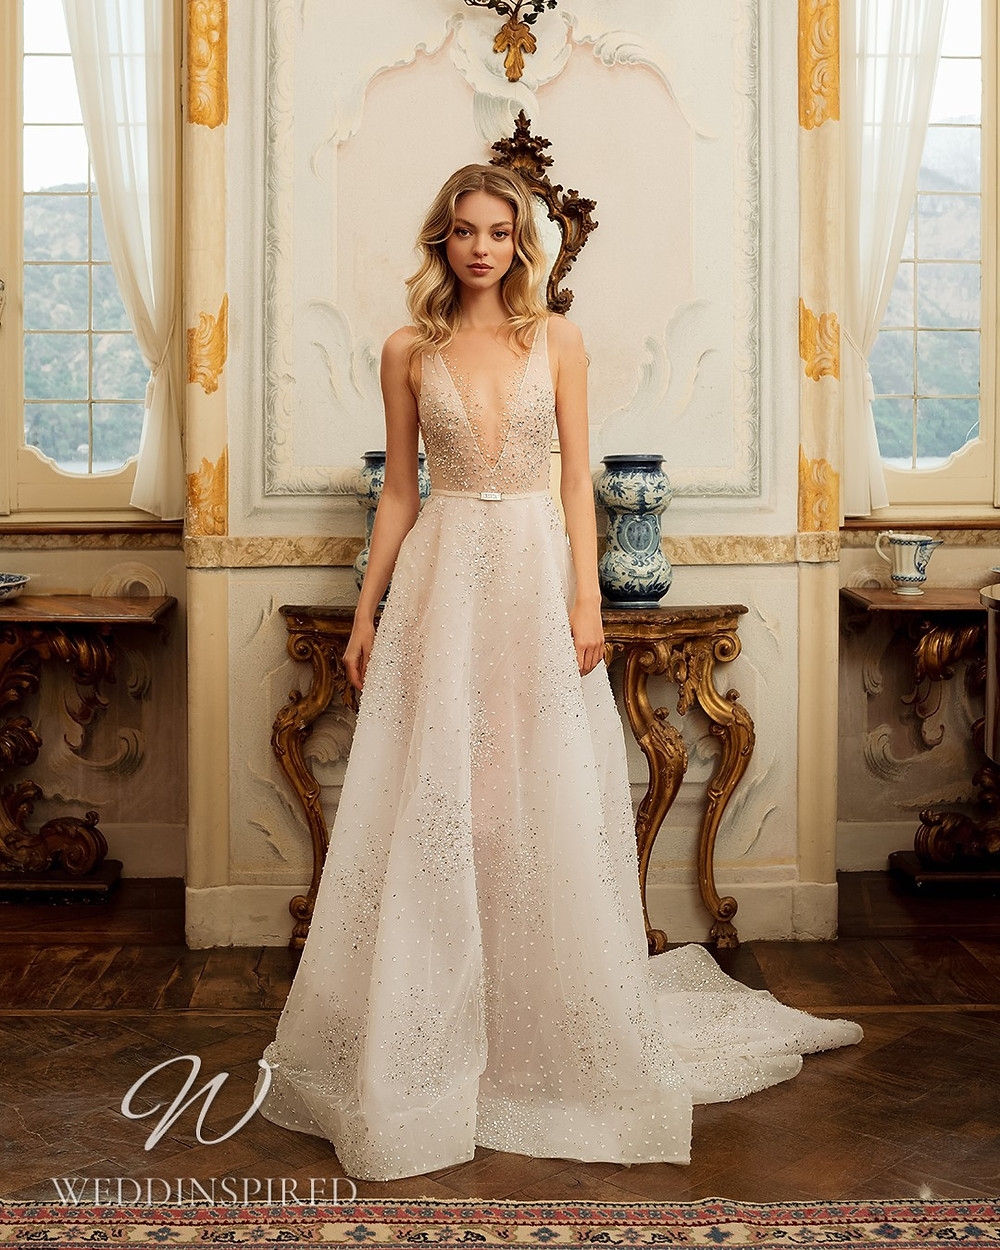 A Berta 2022 tulle A-line wedding dress with a v neck